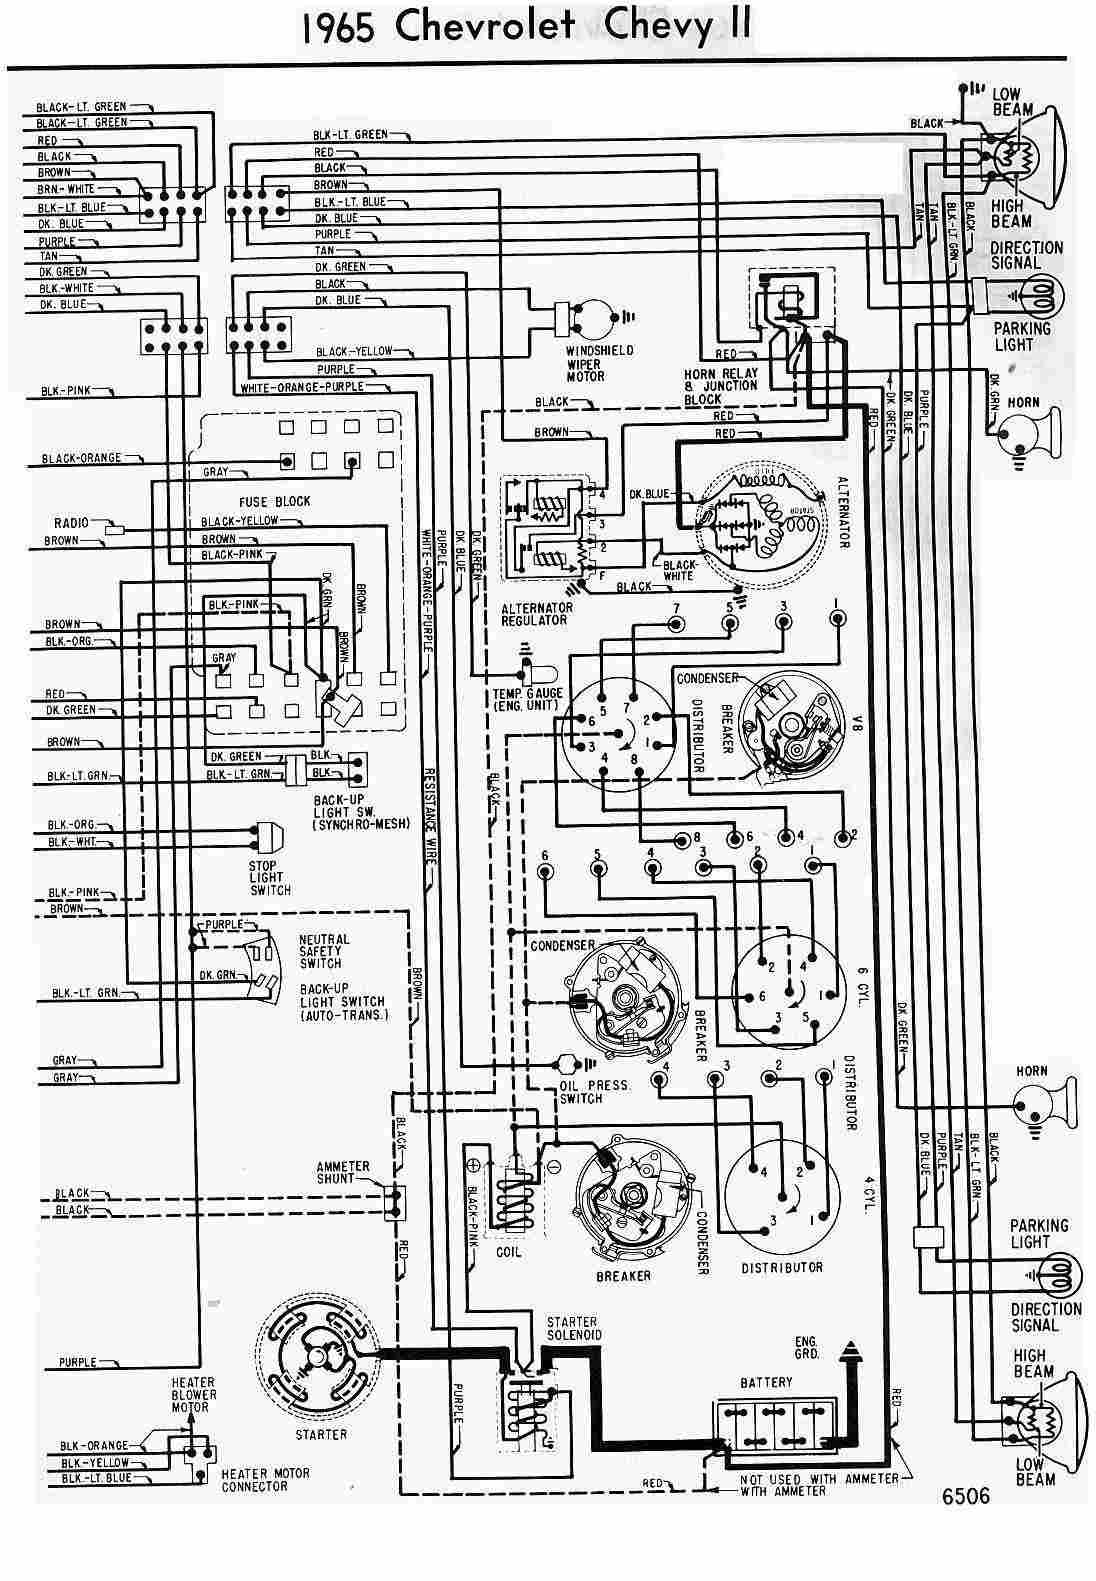 medium resolution of 65 corvair wiring diagram simple wiring diagrams 2009 chevy impala wiring diagram 1965 chevy wiring diagram